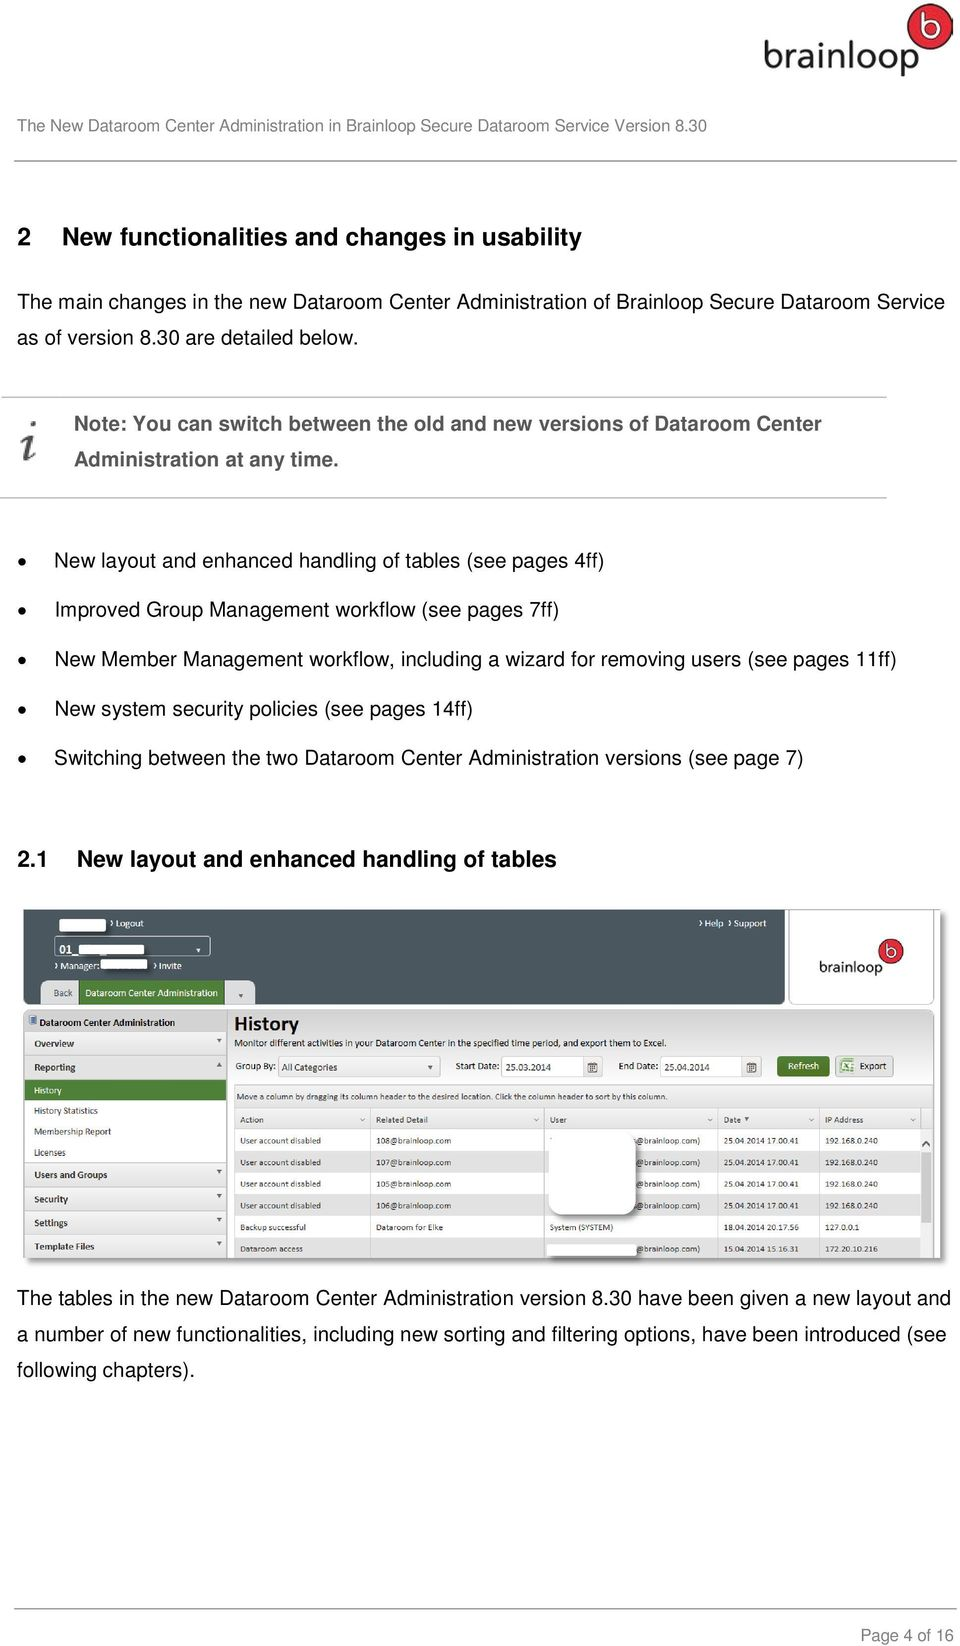 New layout and enhanced handling of tables (see pages 4ff) Improved Group Management workflow (see pages 7ff) New Member Management workflow, including a wizard for removing users (see pages 11ff)